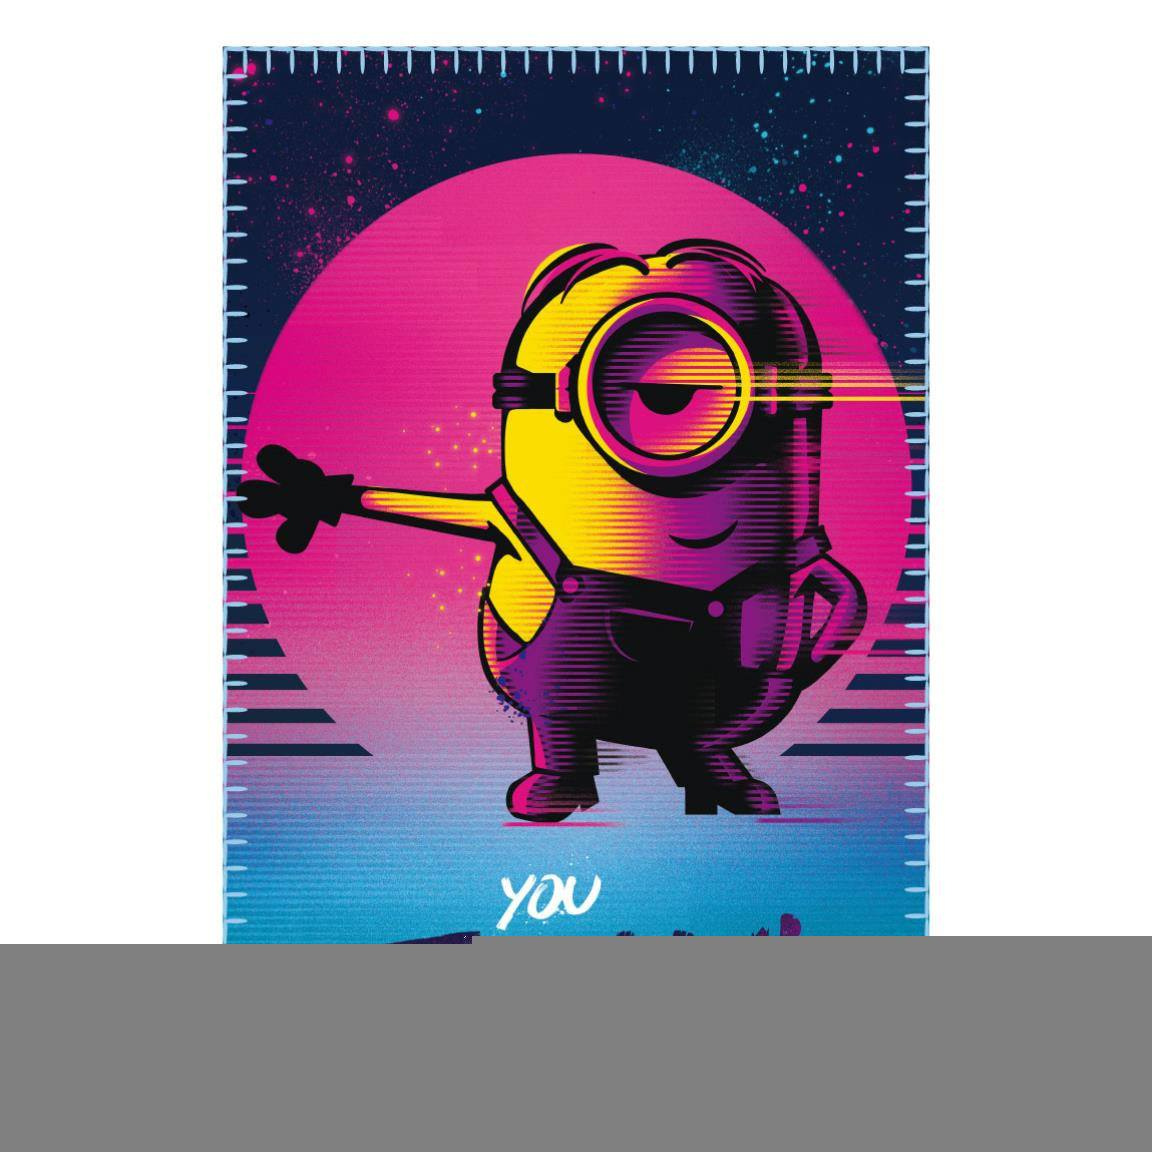 Minions Fleece Blanket You Feelin' This 100 x 150 cm